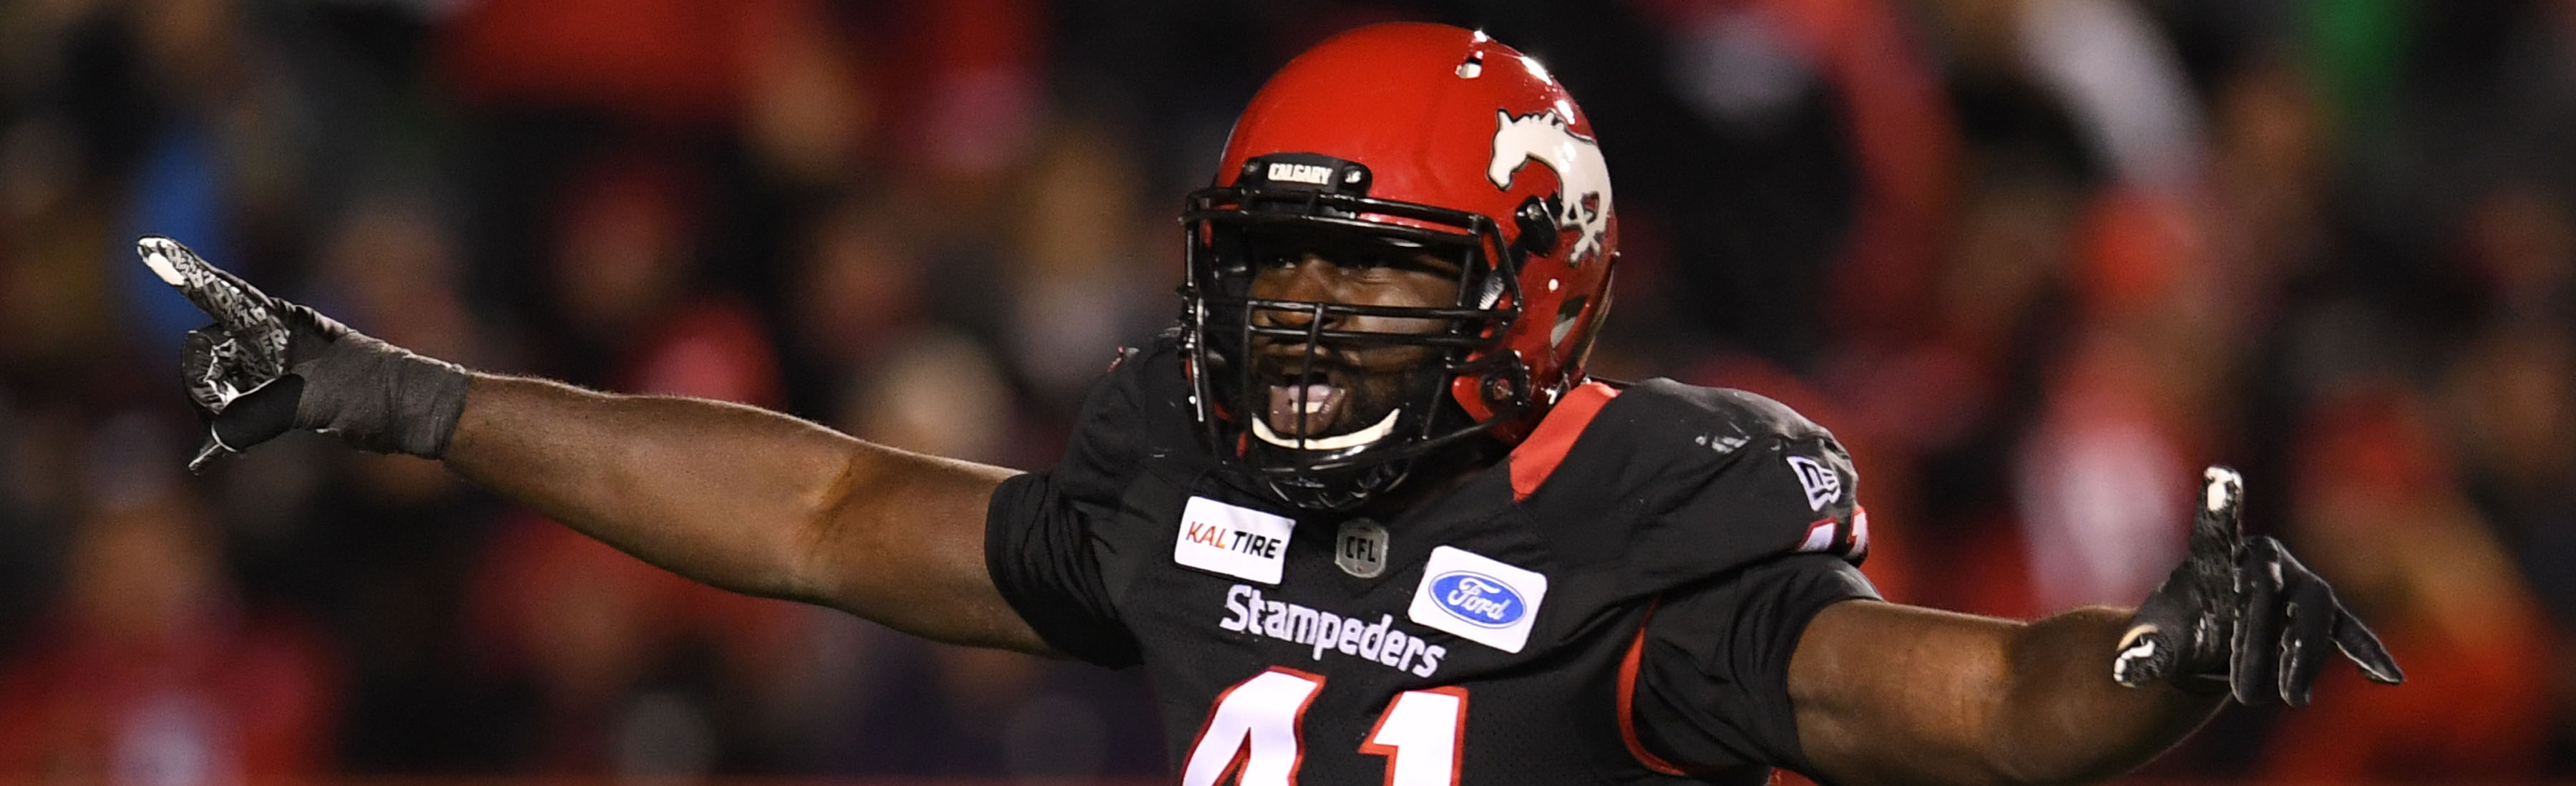 LOOKING OUT FOR NO.-1 - Calgary Stampeders